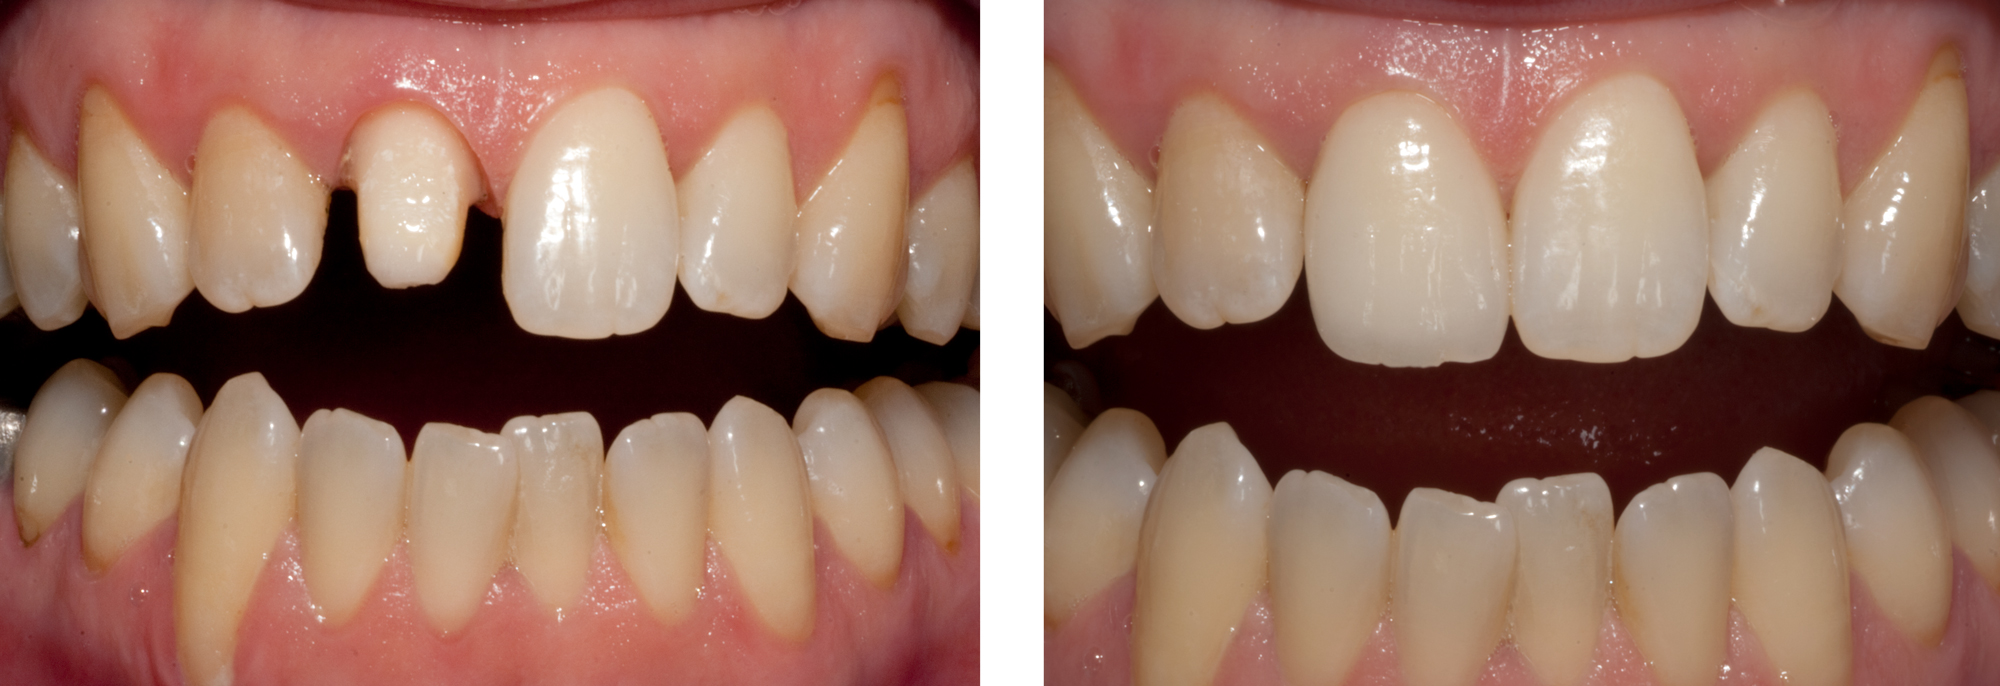 Single-Front Tooth By Ron Winter of Fabulous Teeth @ Seaside Dental Laboratory $ Clinic Takapuna Auckland New Zealand.jpg